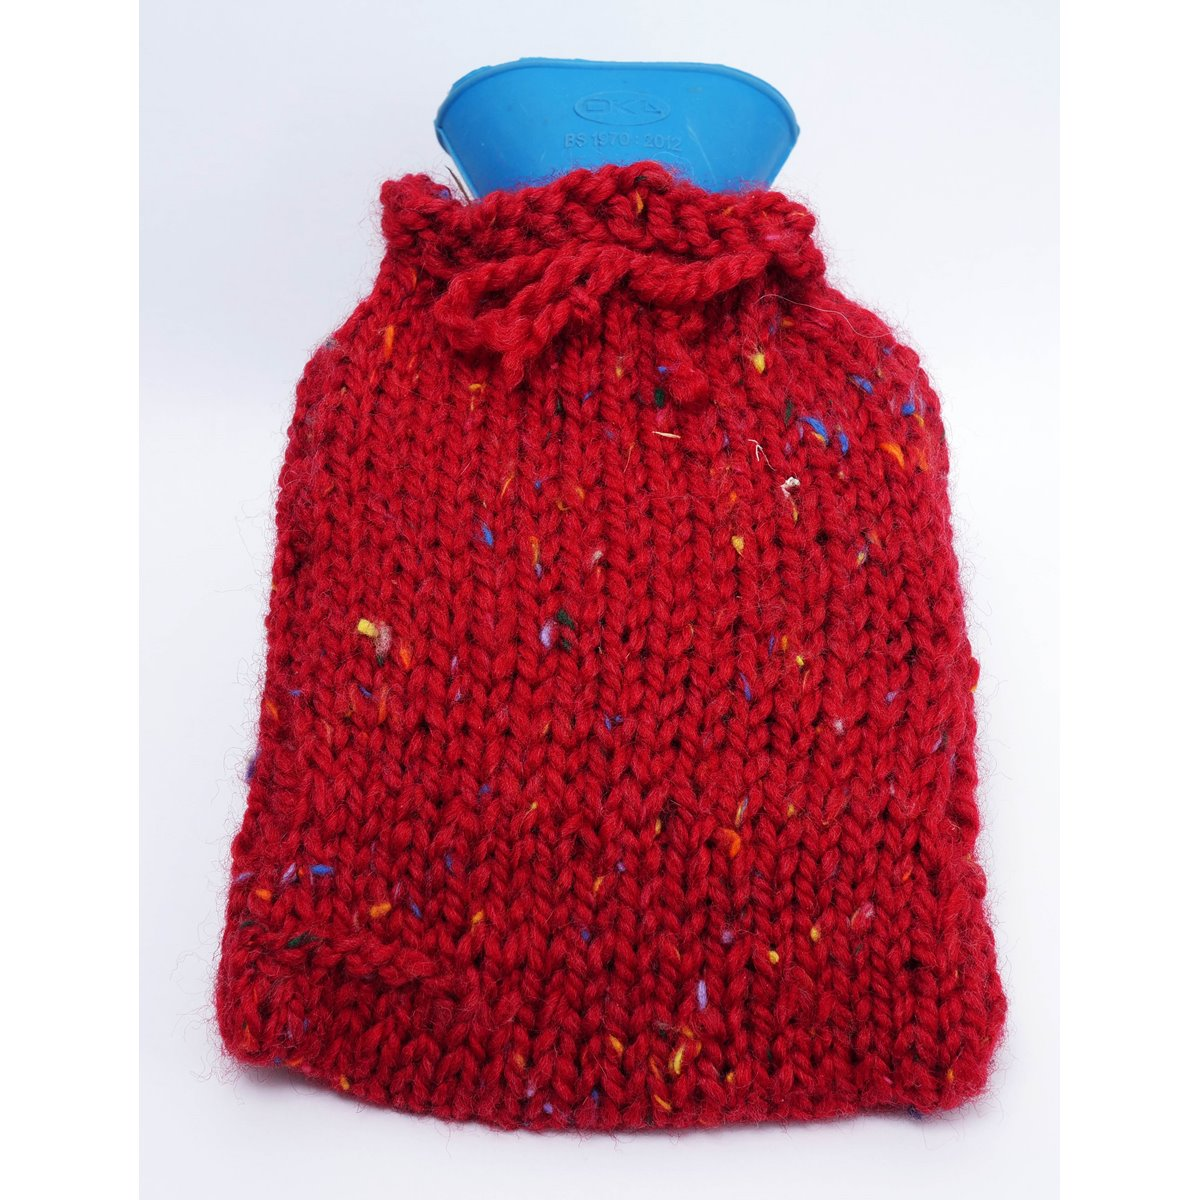 Tell me a good knitting site where you can find knitting patterns for fashion models